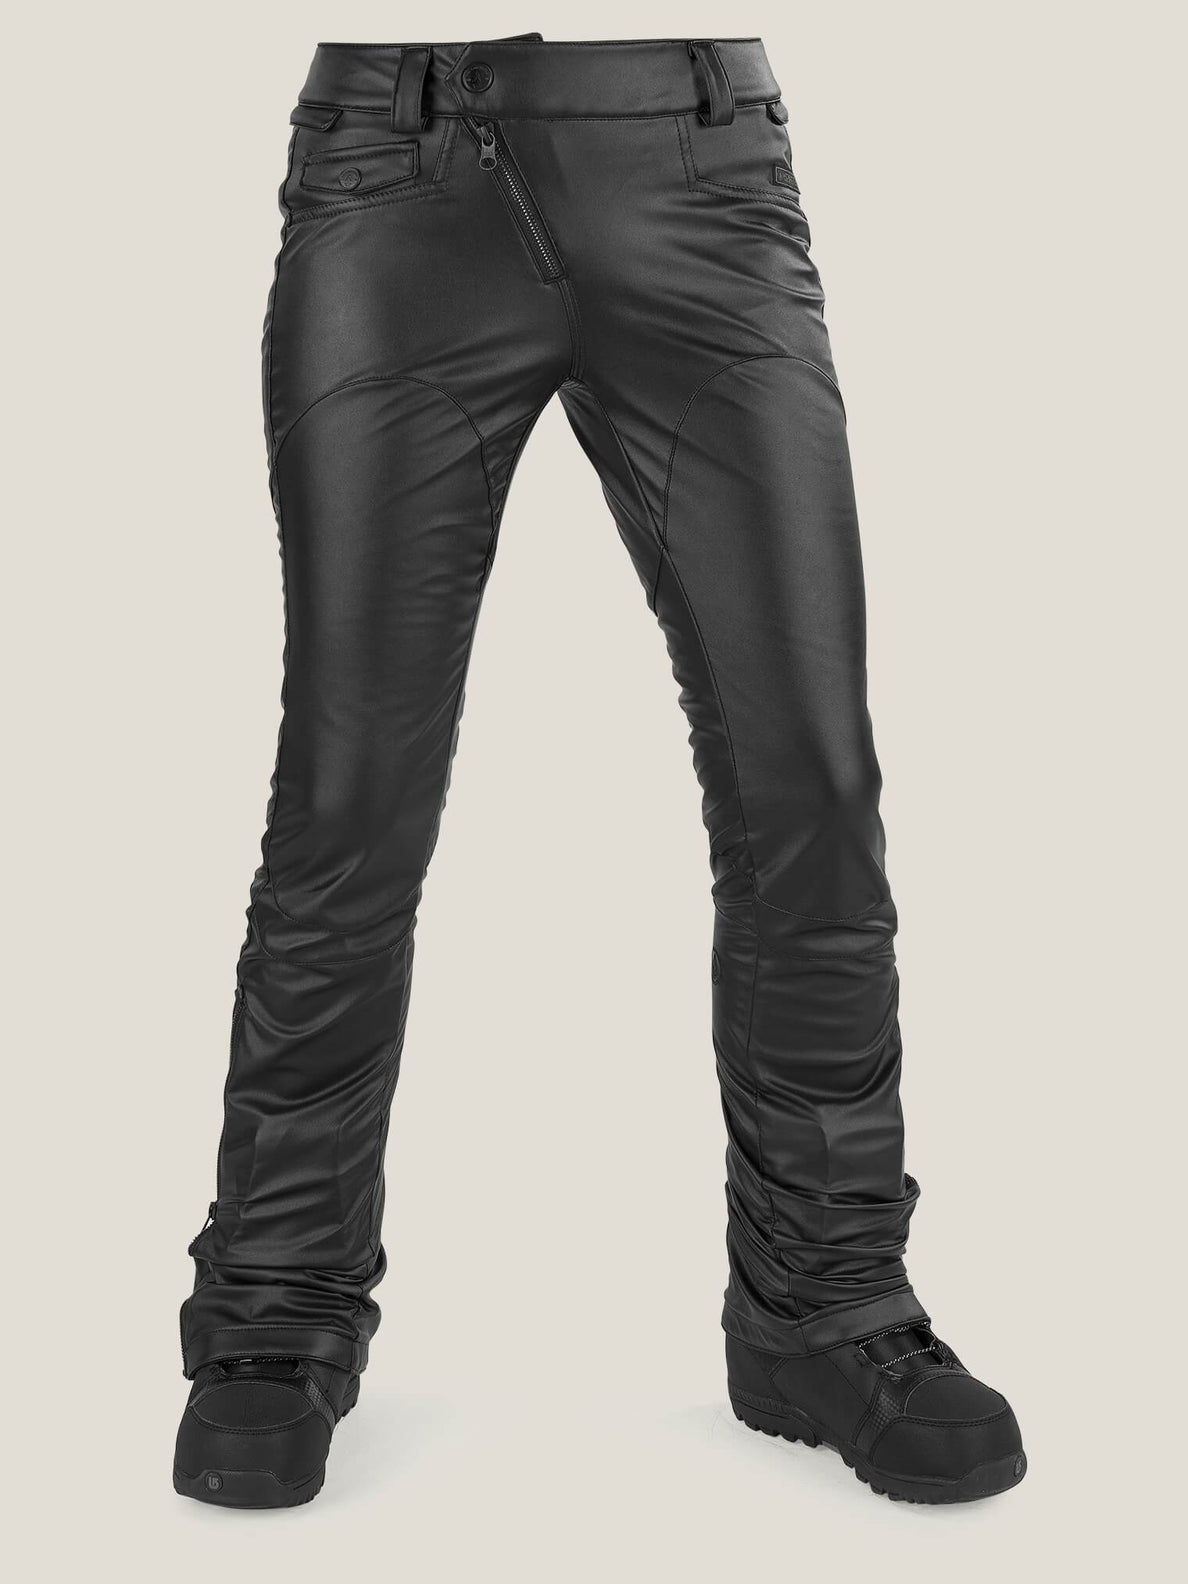 Battle F. Leather Pant In Black, Front View